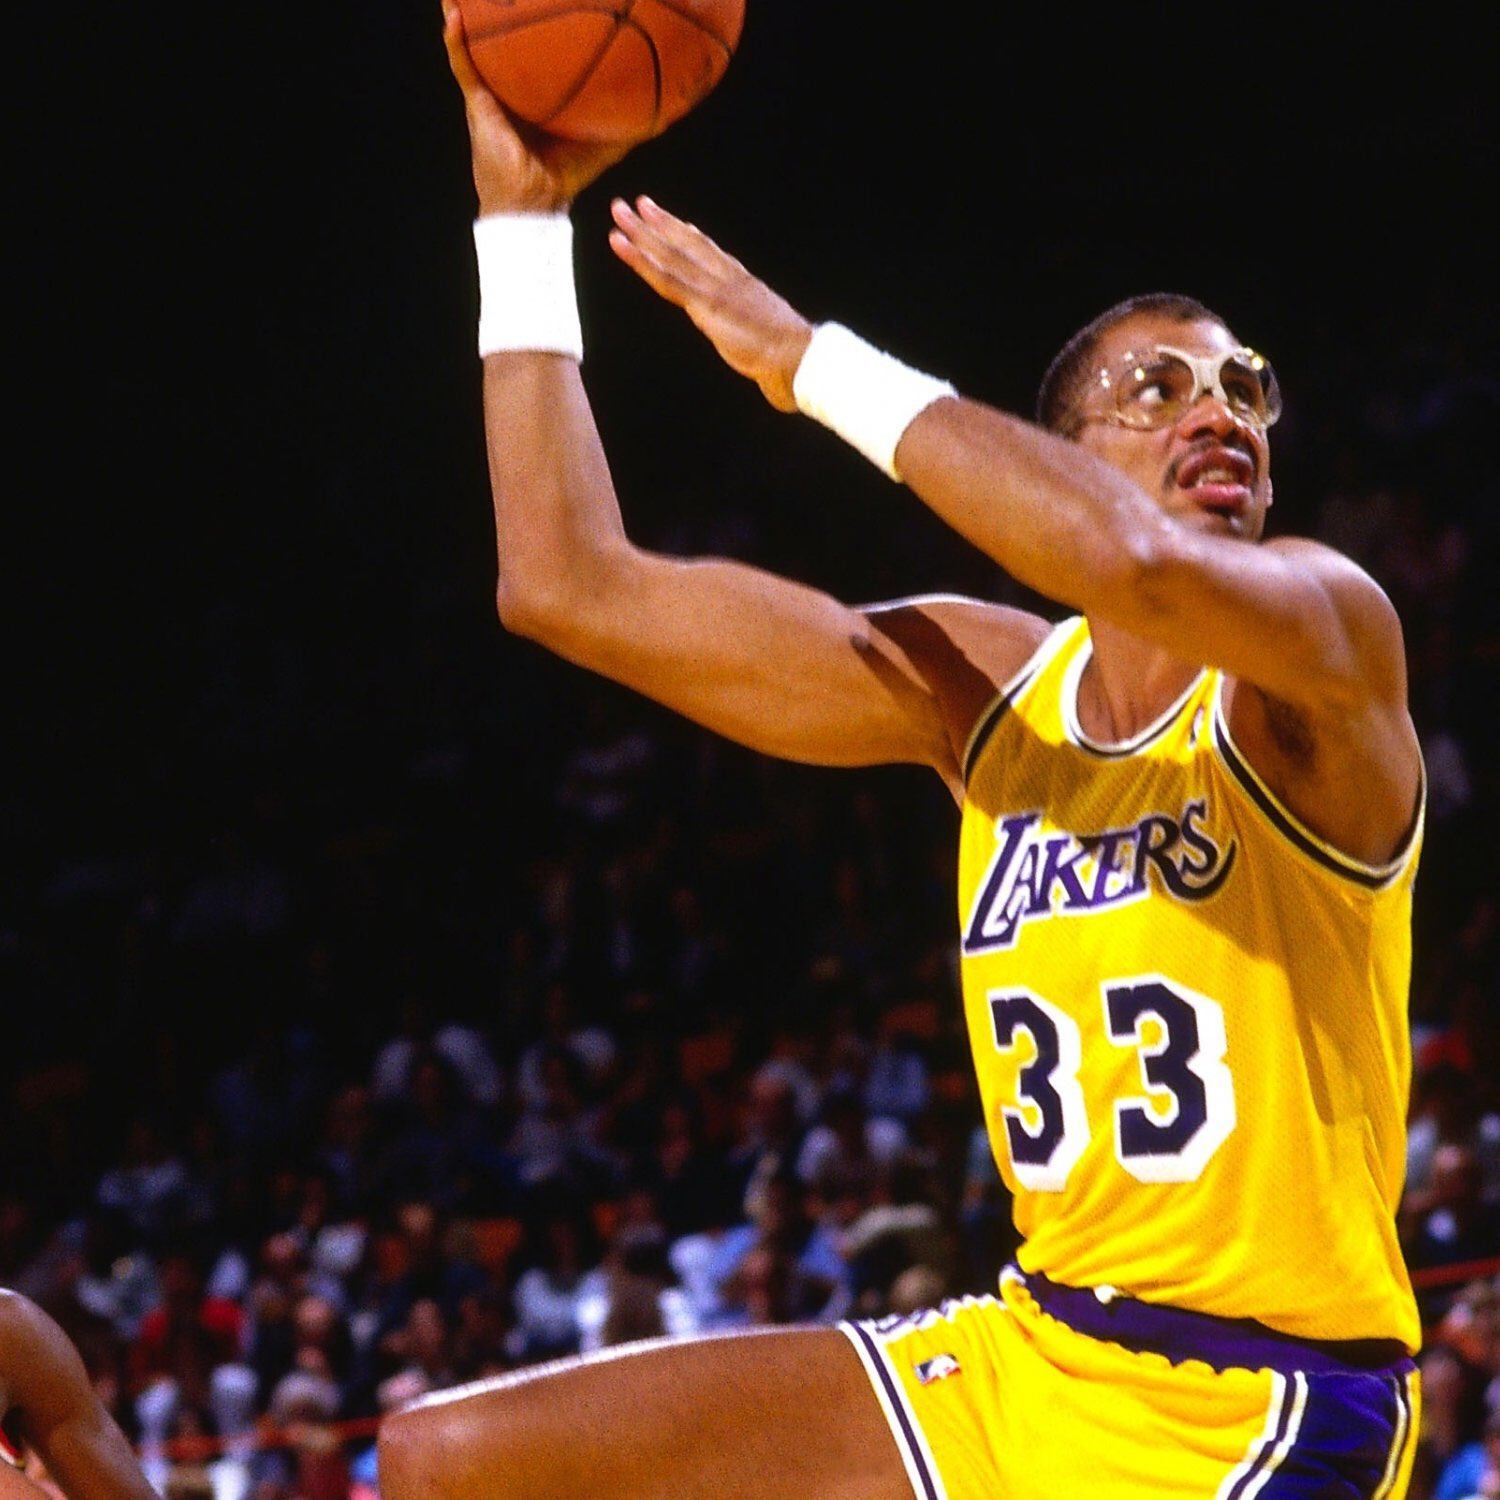 Happy Birthday Kareem Abdul-Jabbar